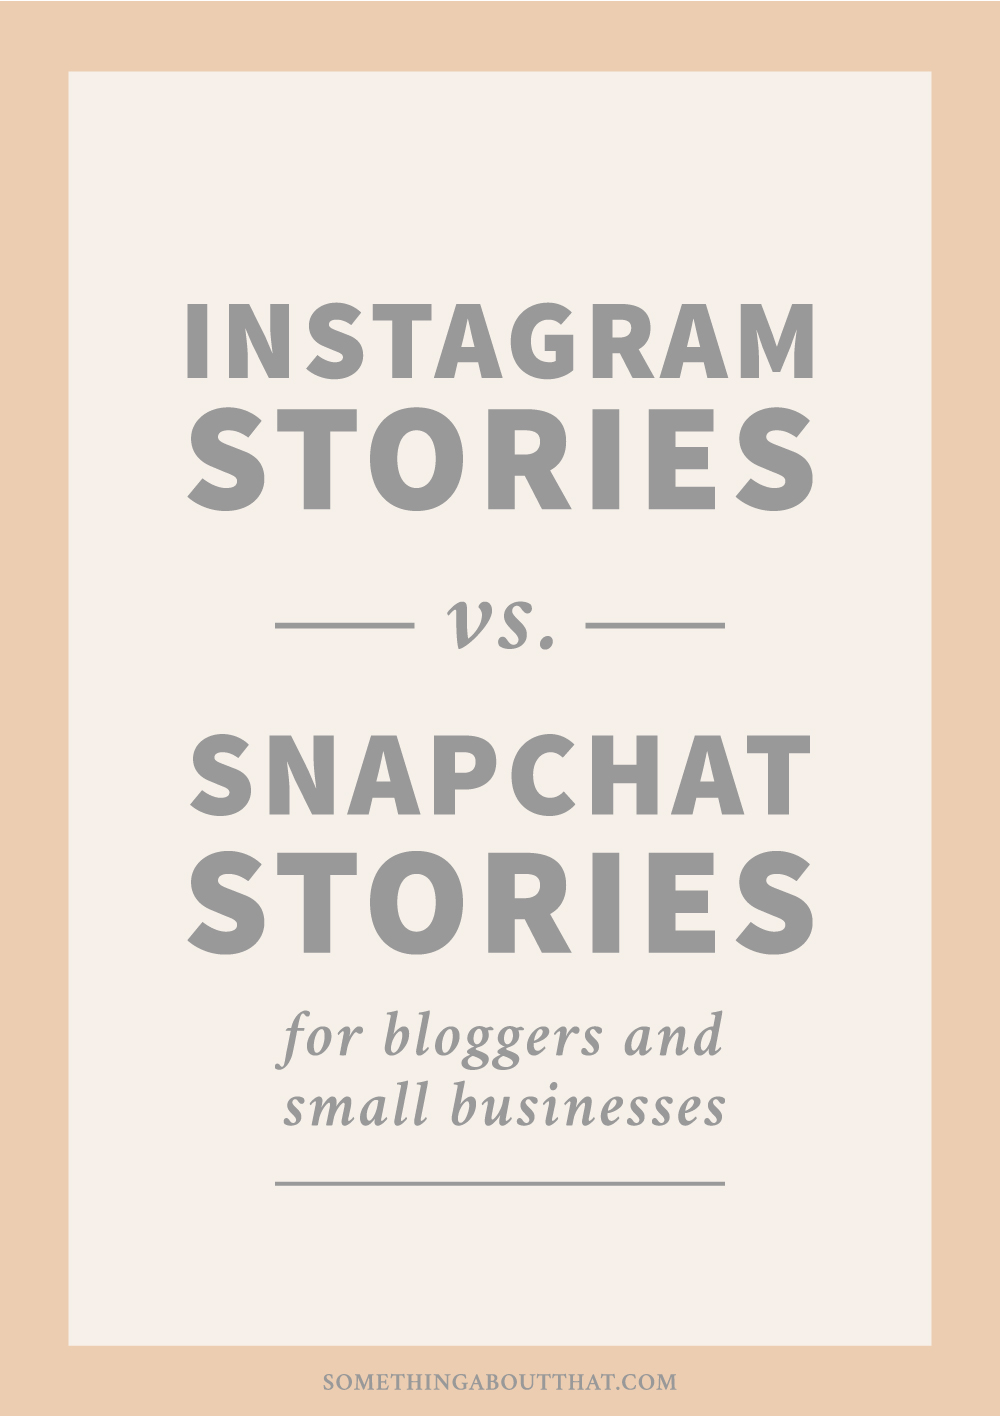 Instagram Stories vs. Snapchat Stories for Bloggers